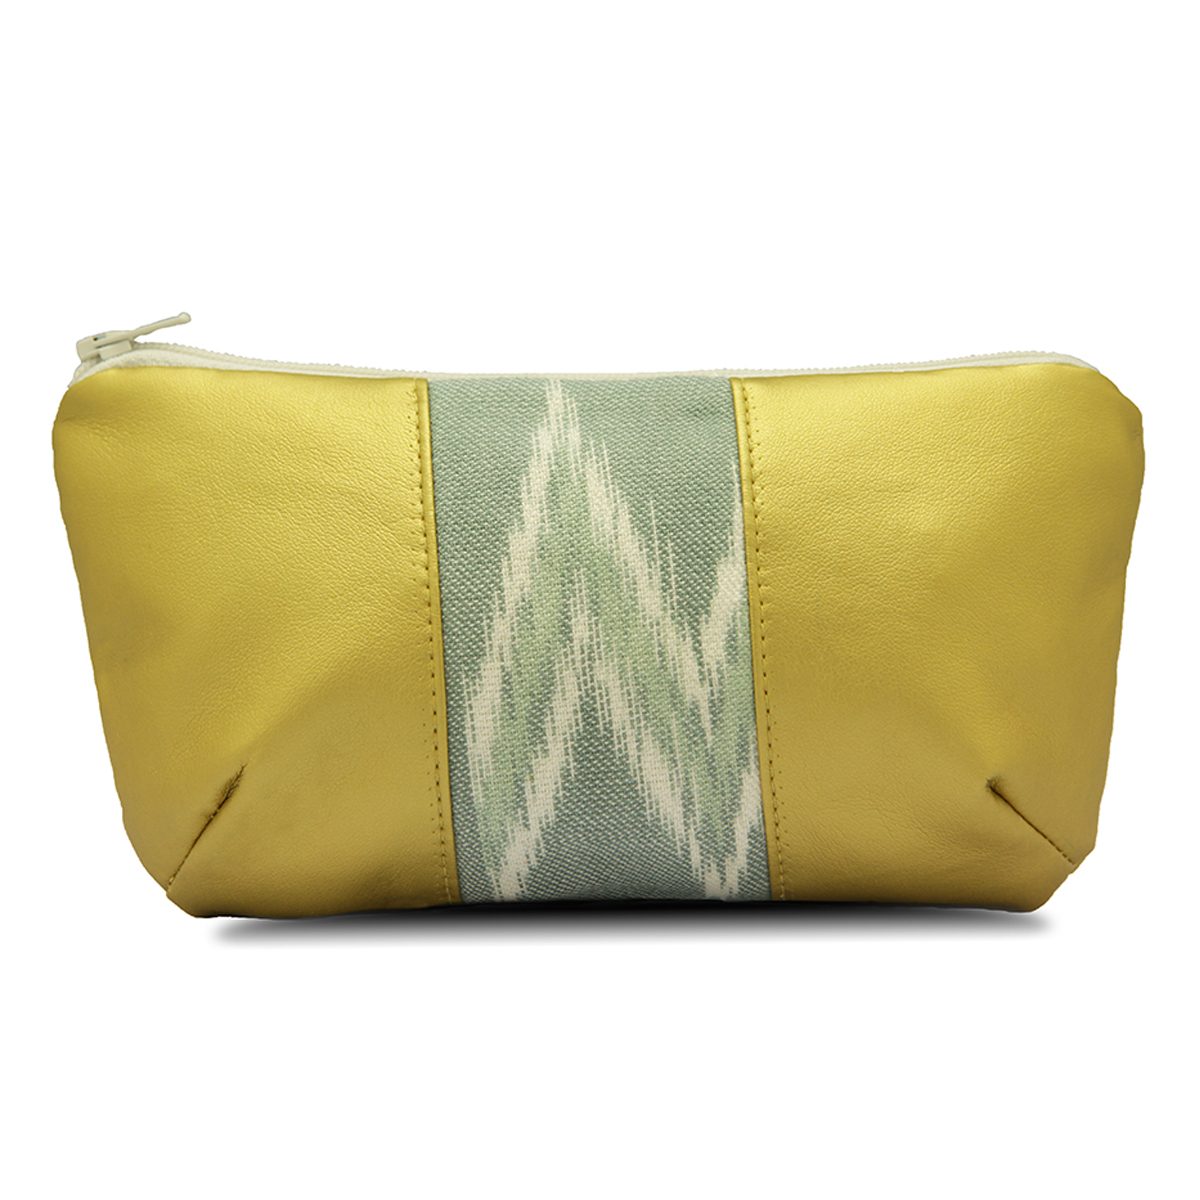 Diana Pouch Gold & Paddyfield Gray